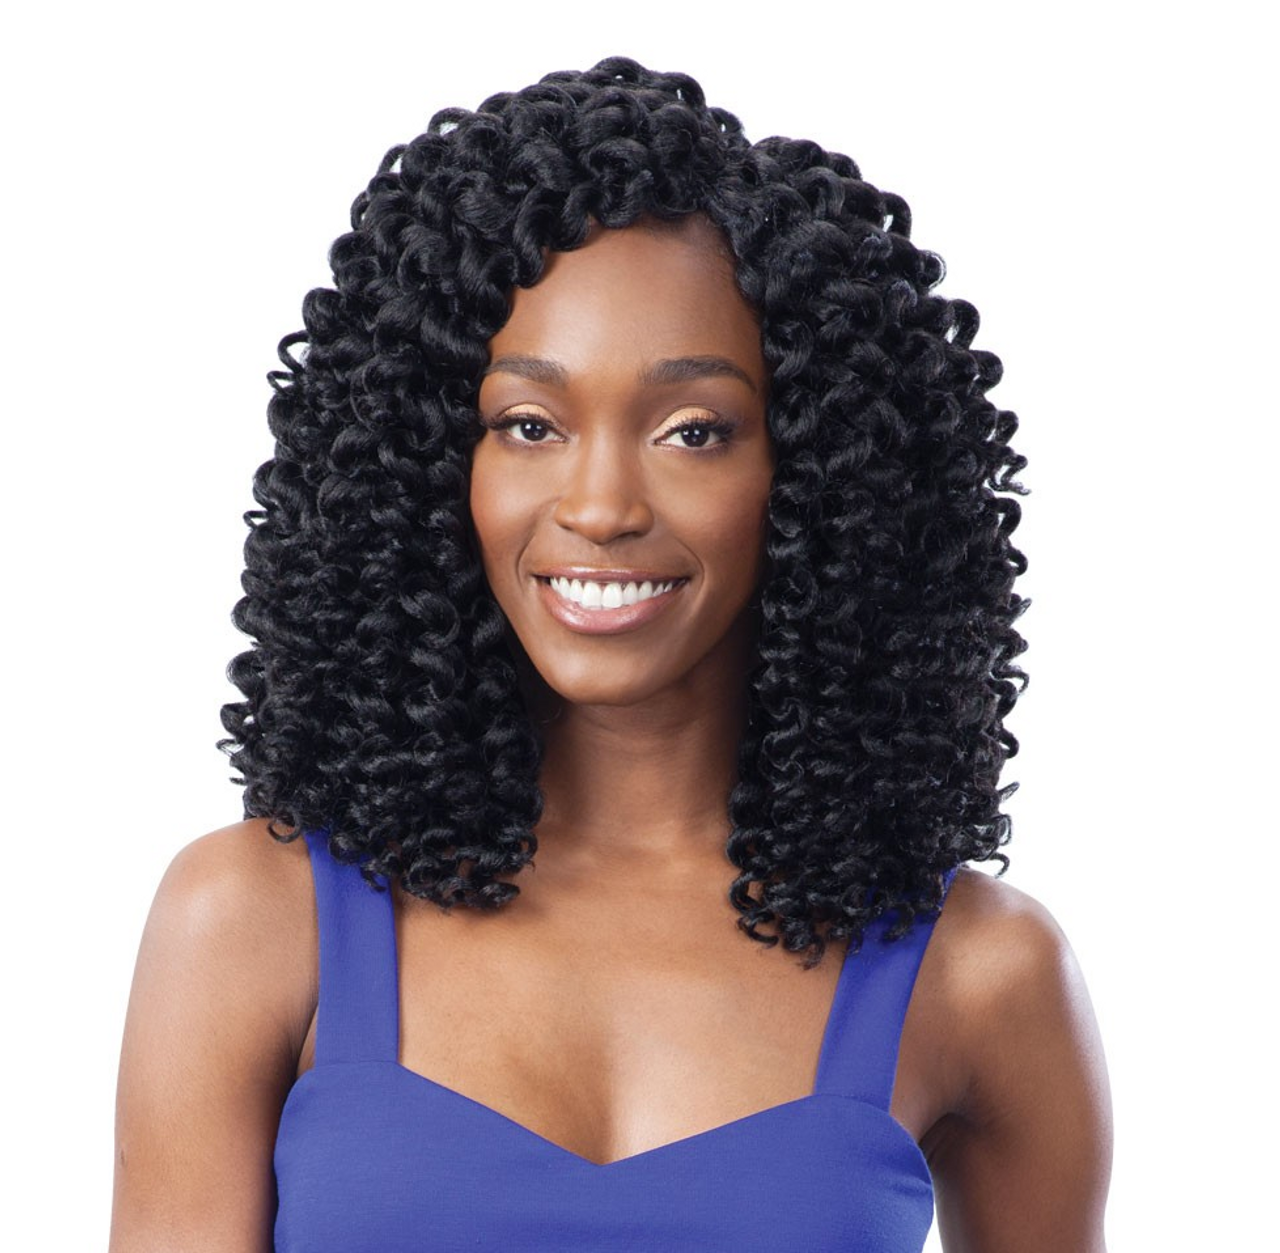 Shake N Go Freetress 2x Wand Curl Braid Collection Ringlet Wand